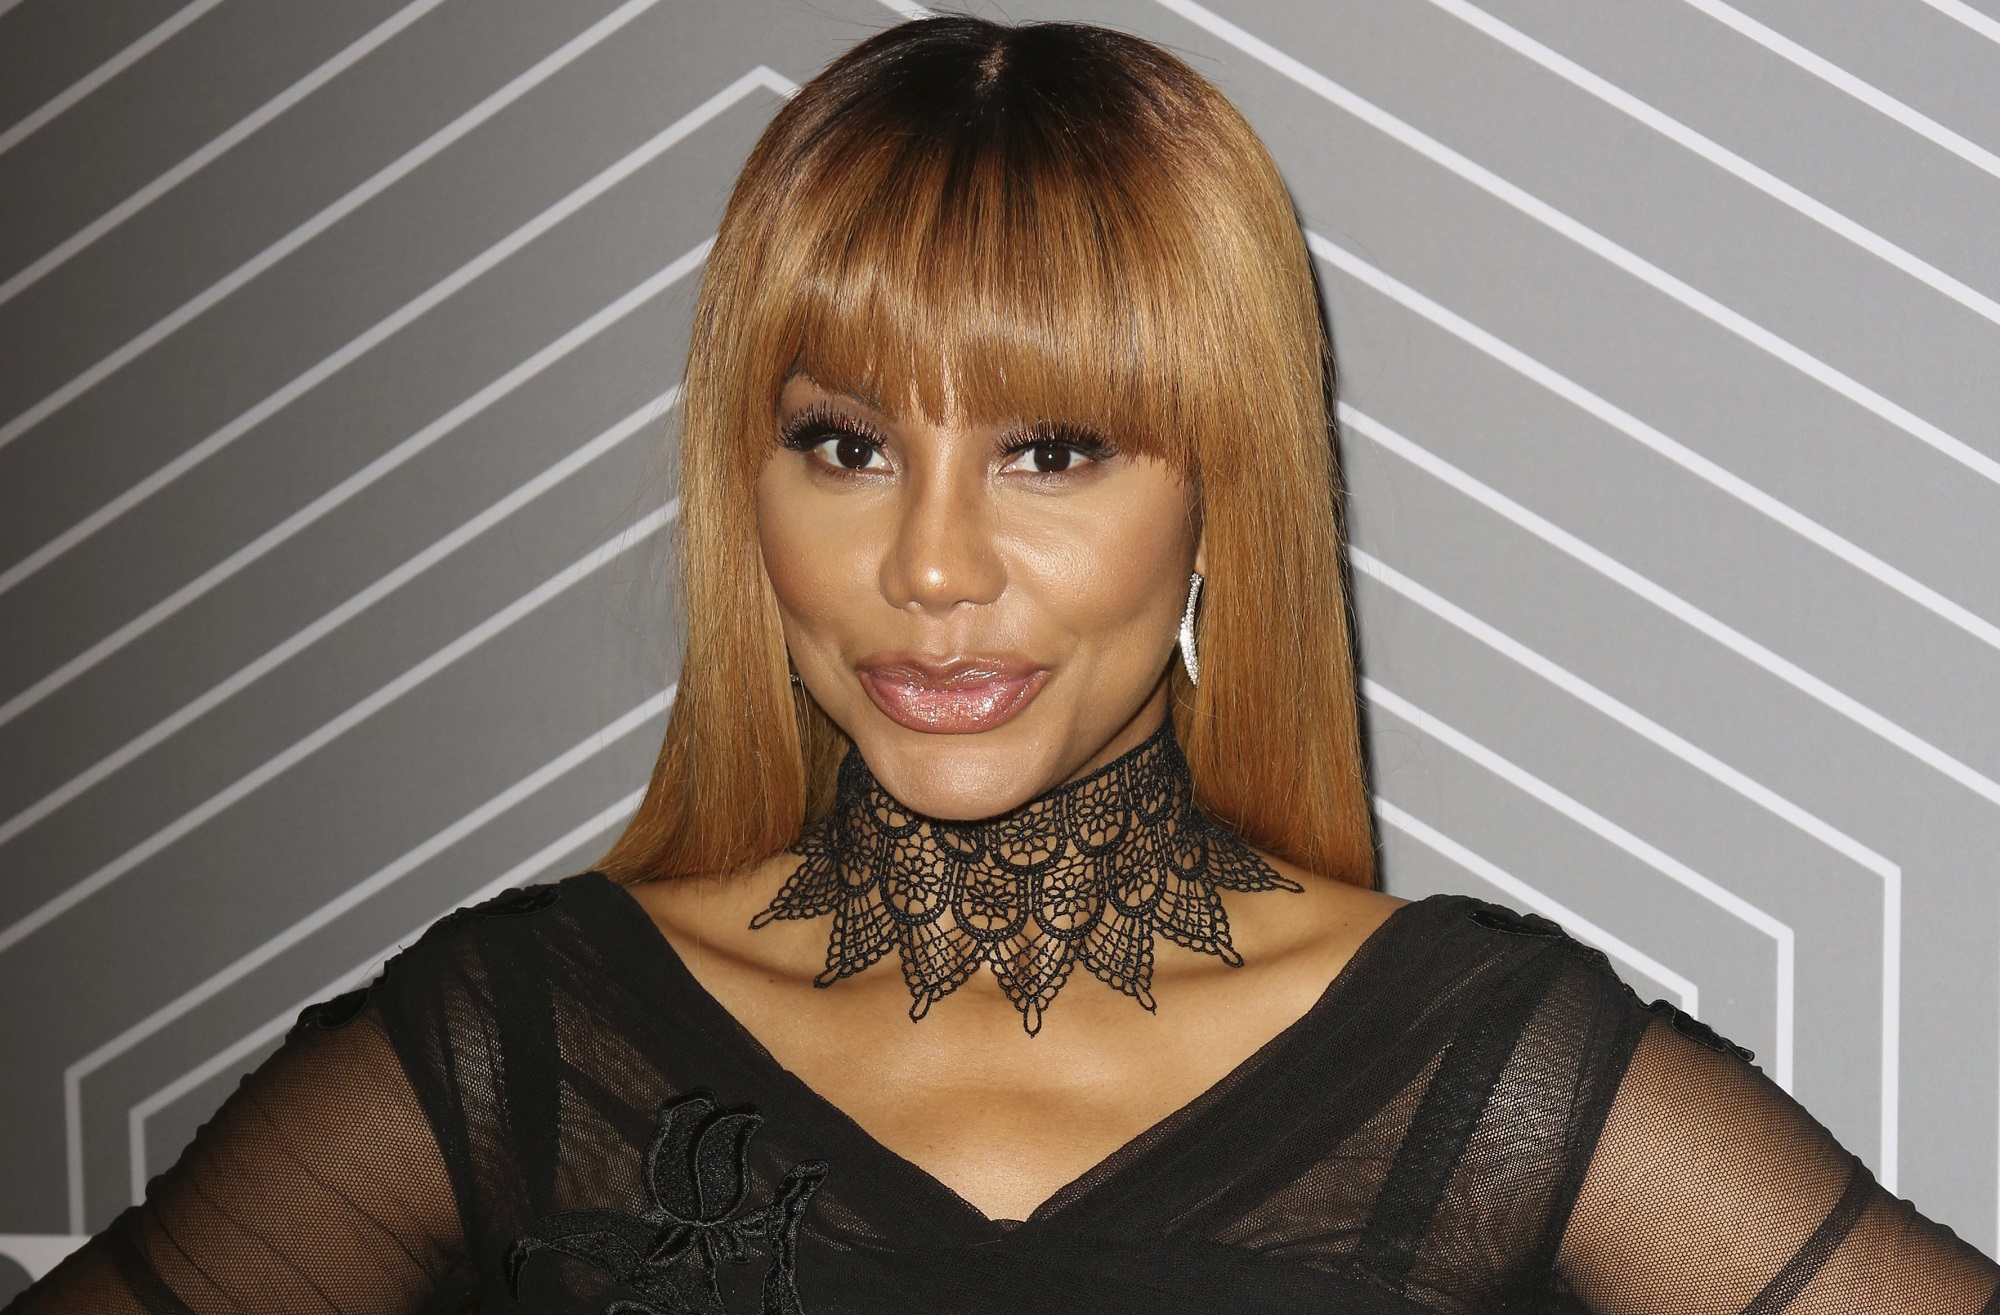 Tamar Braxton Posts A Breathtaking Photo And Shares A Motivational Message – Check Out Her Post Here